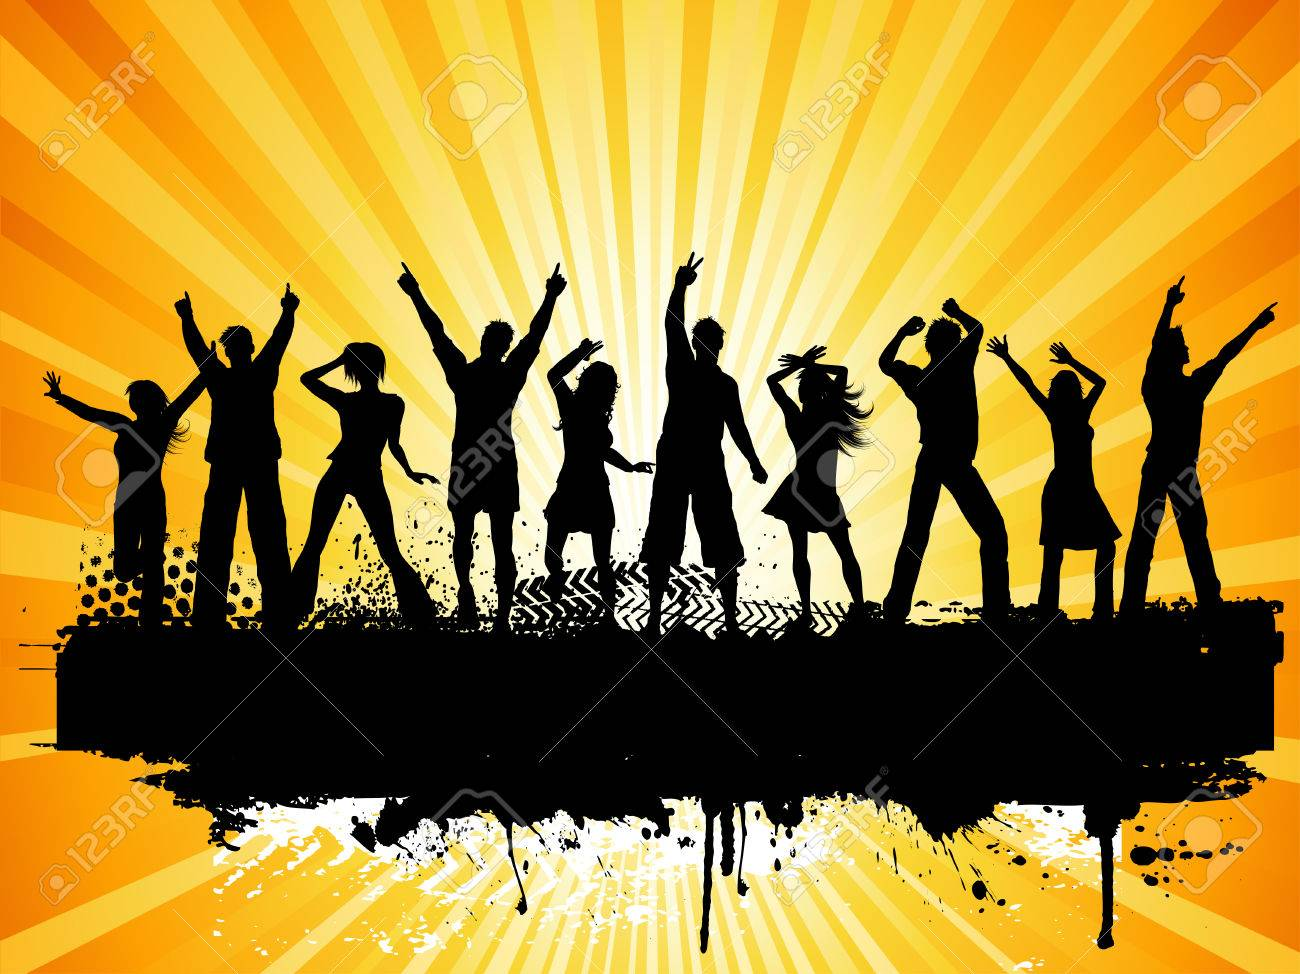 Silhouettes of people dancing on grunge background Stock Vector - 5143195